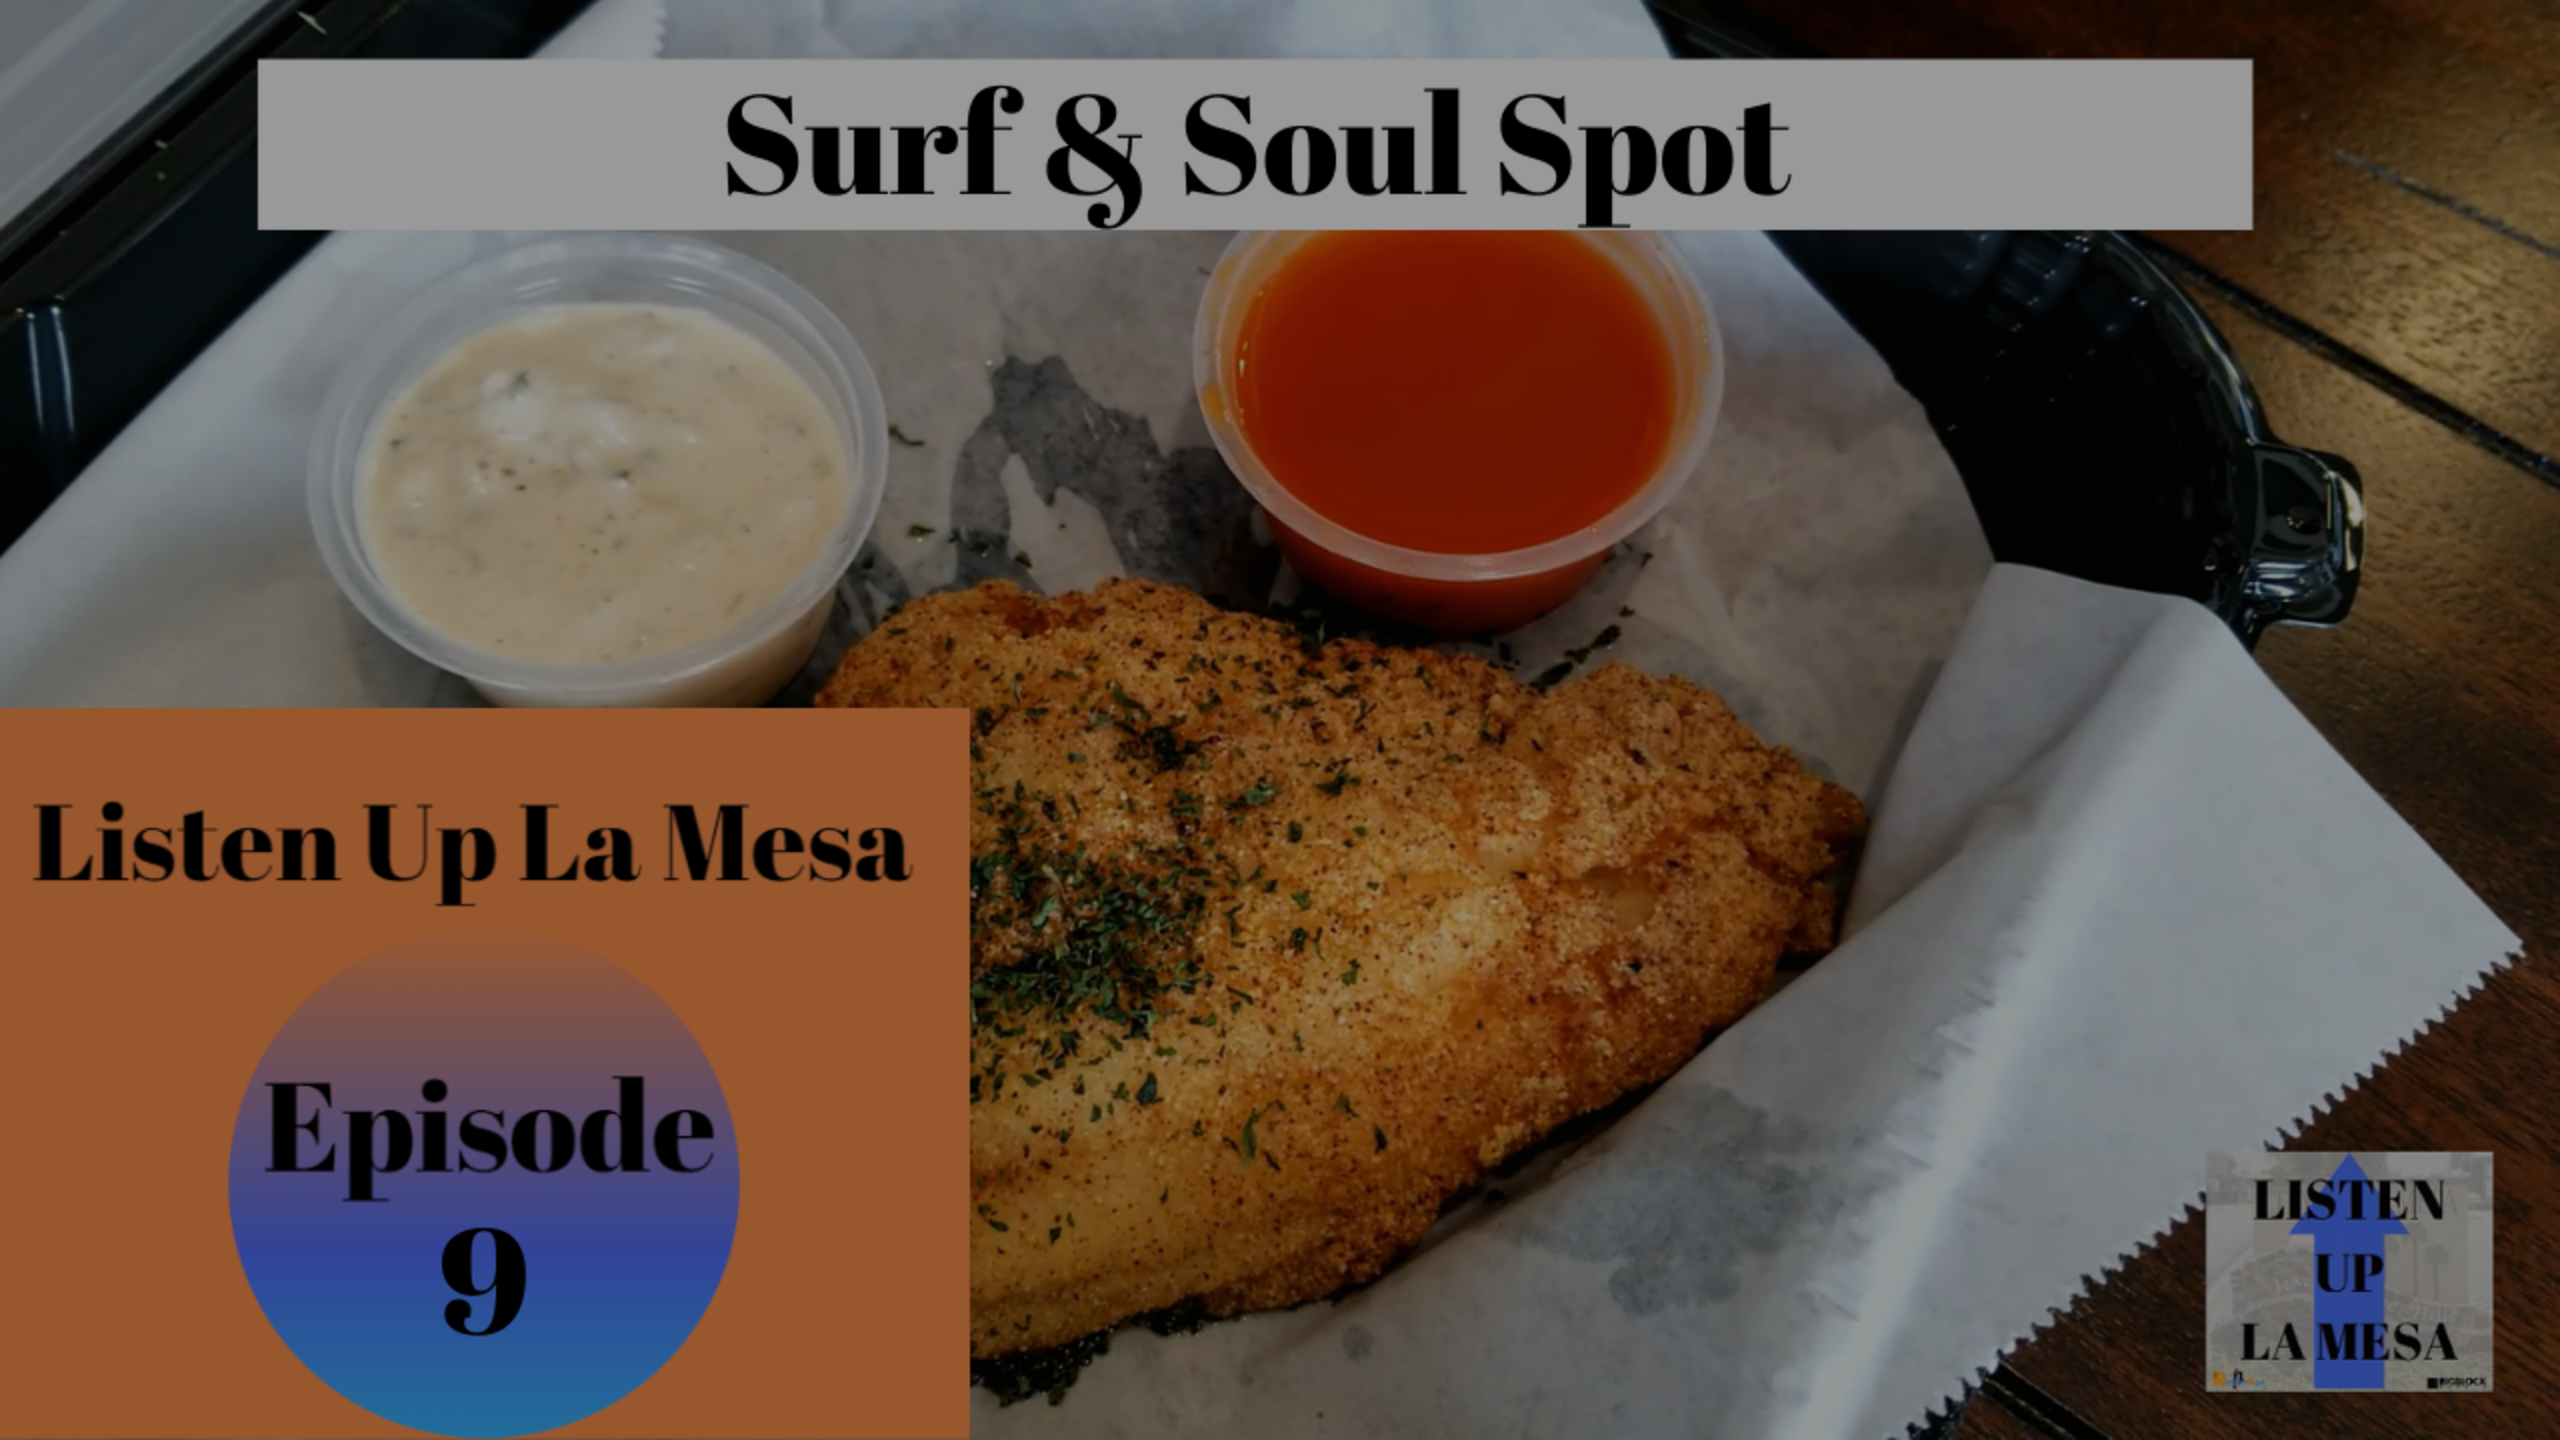 Soul Food In San Diego Ep:9 Listen Up La Mesa – Surf and Soul Spot